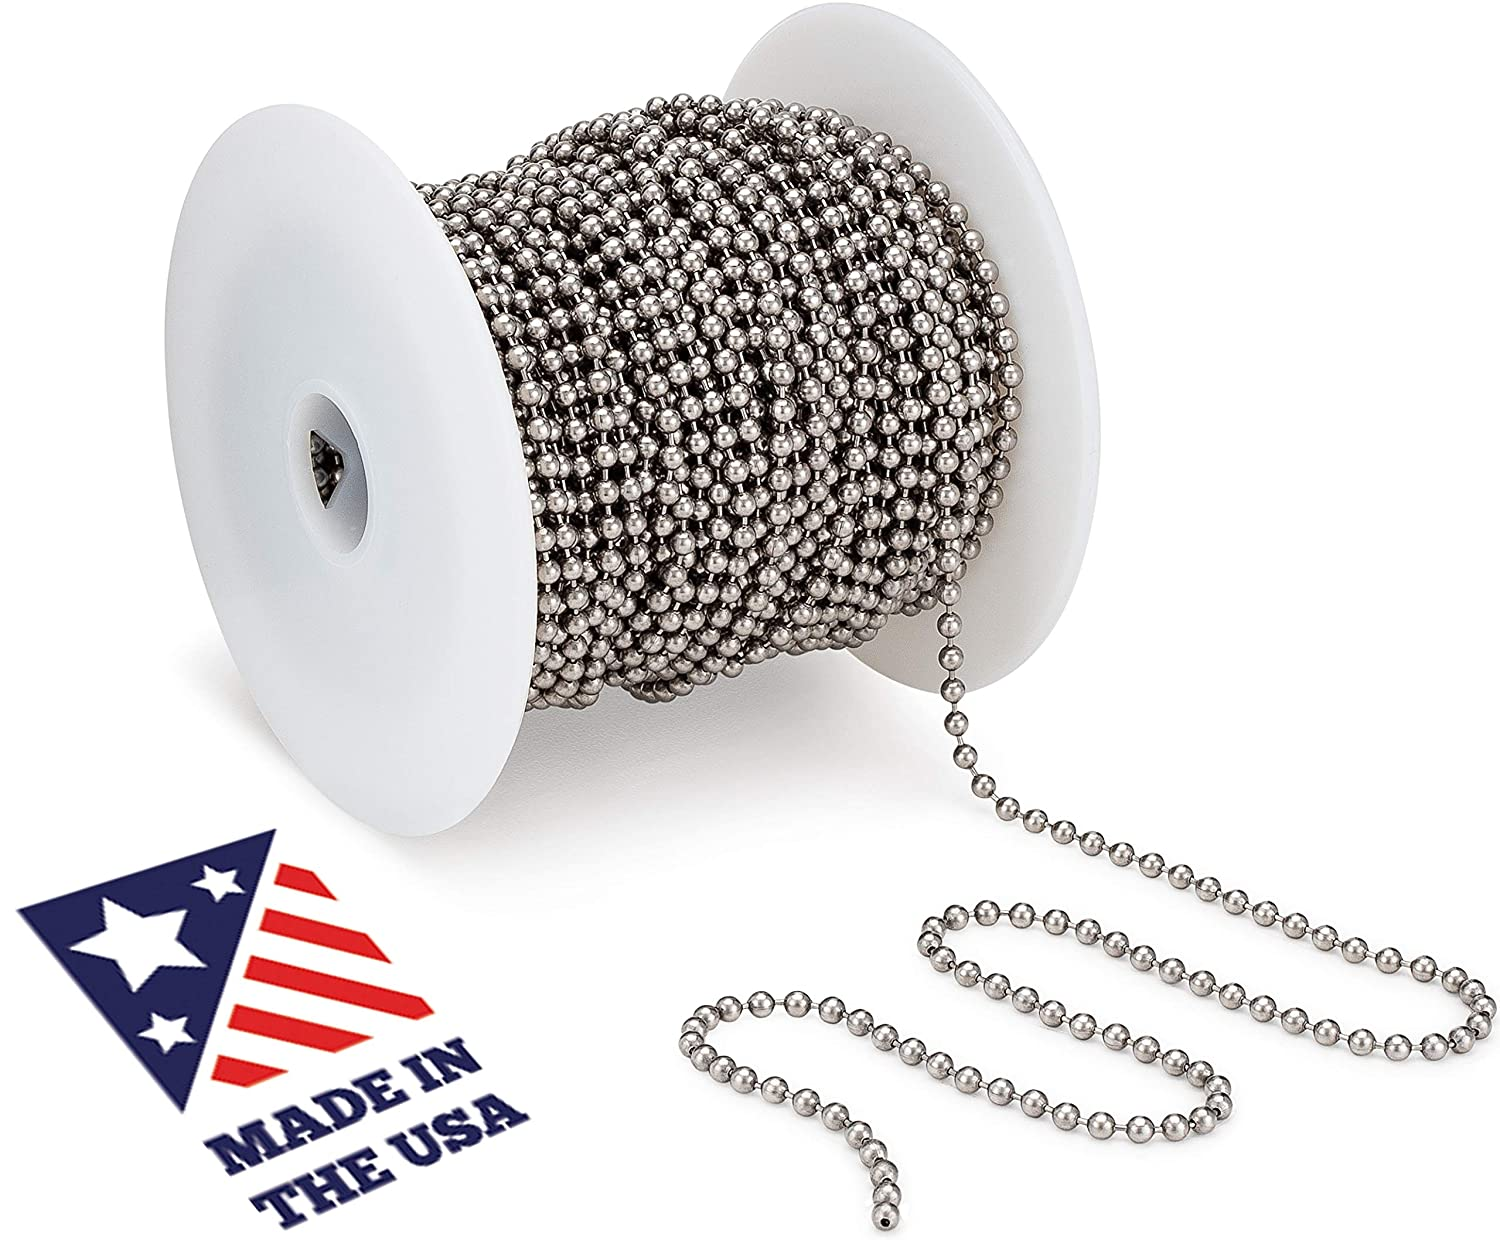 Commercial Retaining Applications and Vertical Blinds Stainless Steel 100 Feet Spool for Plumbing and Industrial Equipment Labeling Beaded Ball #6 Chain